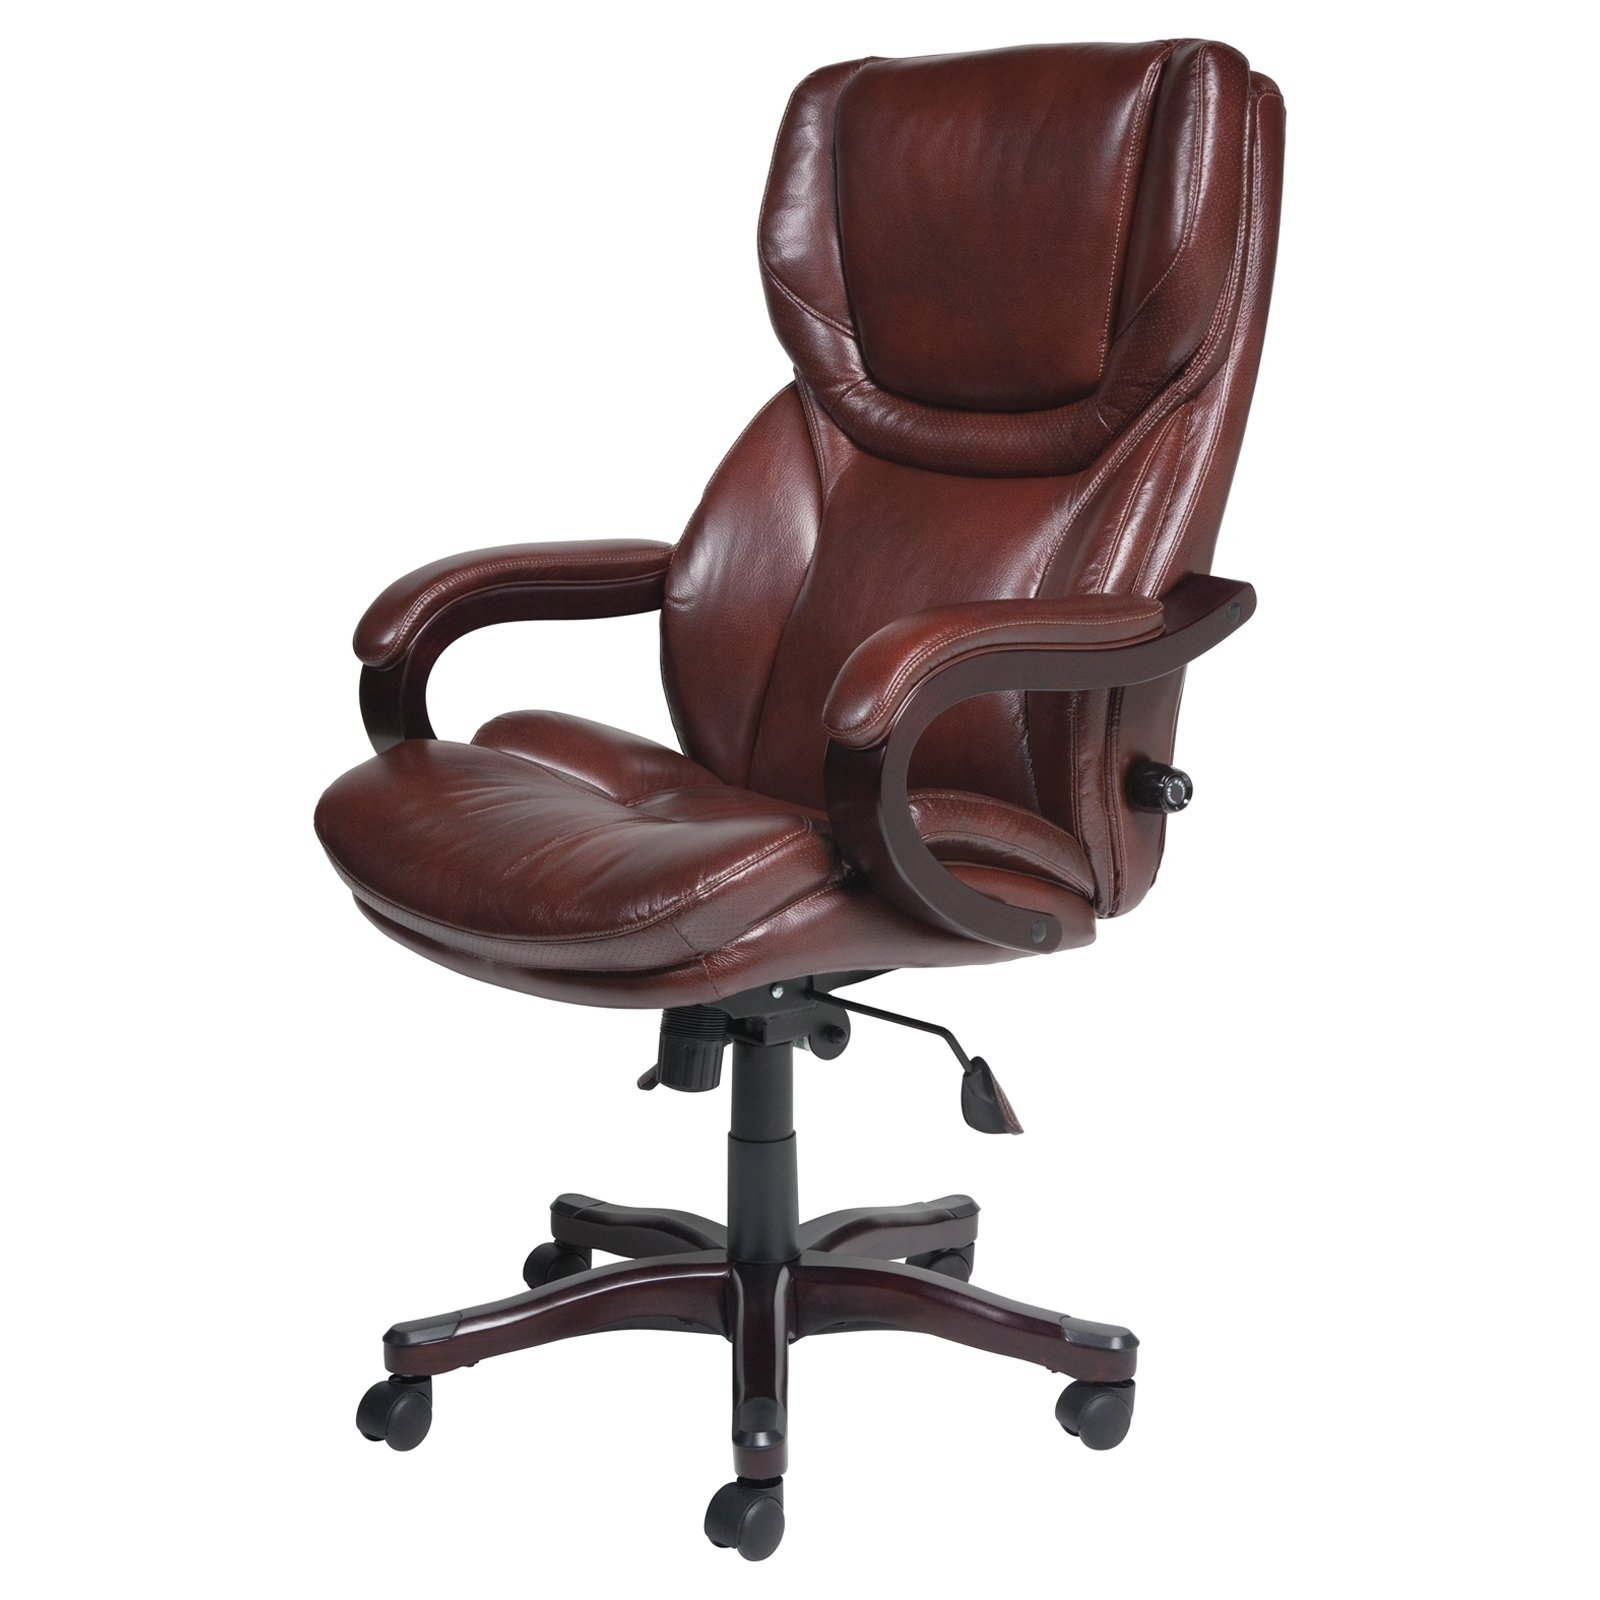 2018 Xl Executive Office Chairs Pertaining To High Back Office Chair Pu Leather Executive Ergonomic Swivel Lift (View 11 of 20)